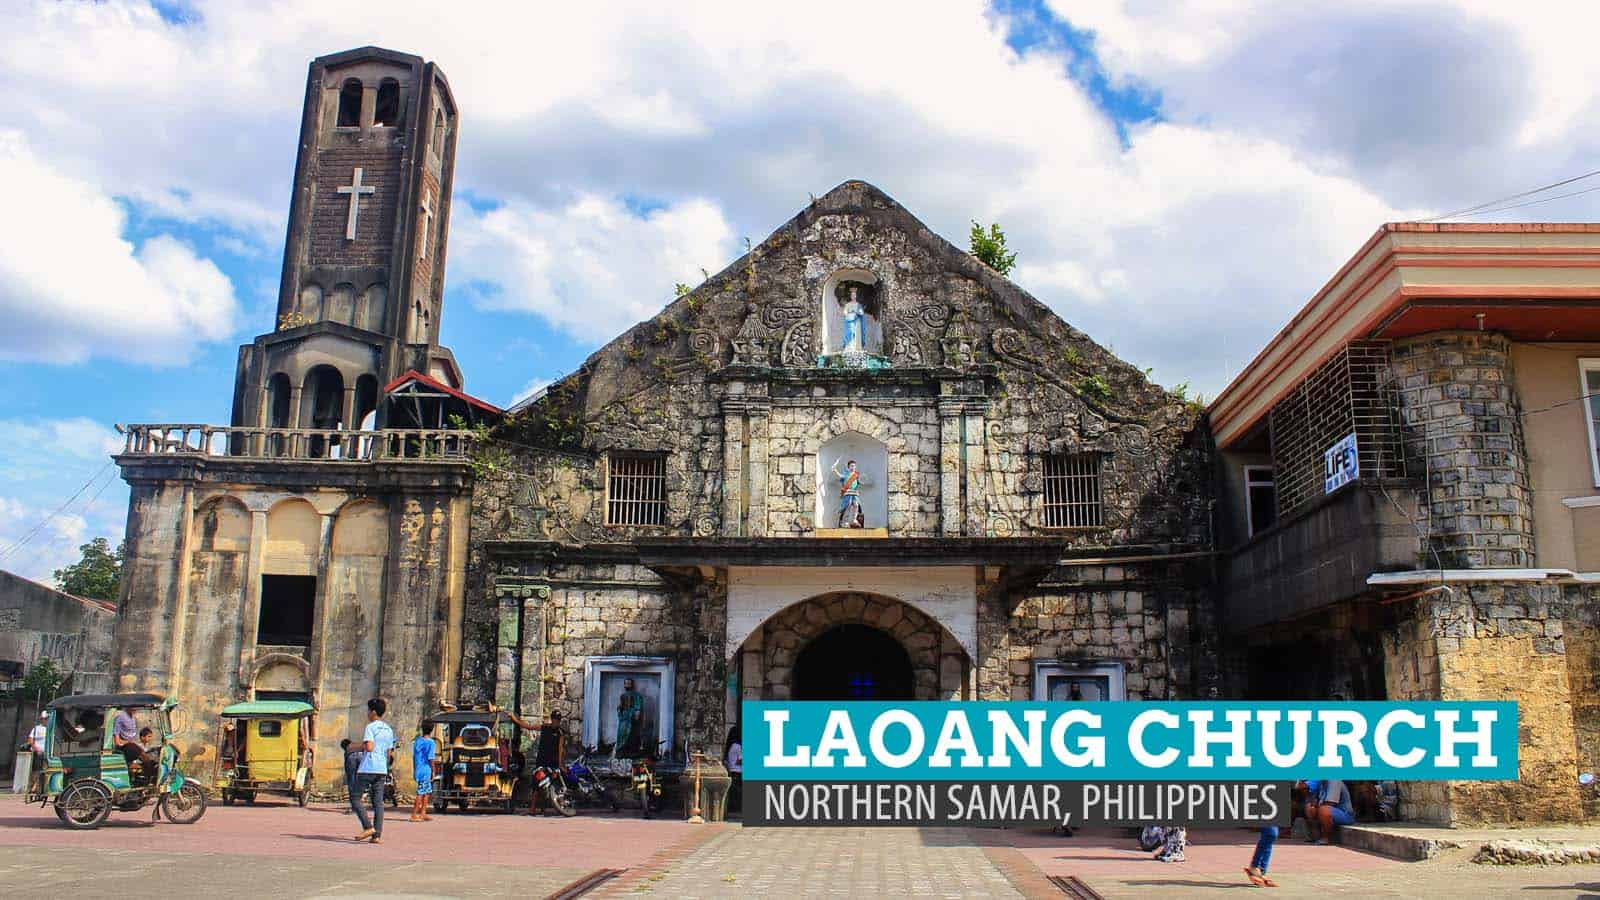 Laoang Church and the Almuraya Fortress: Northern Samar, Philippines